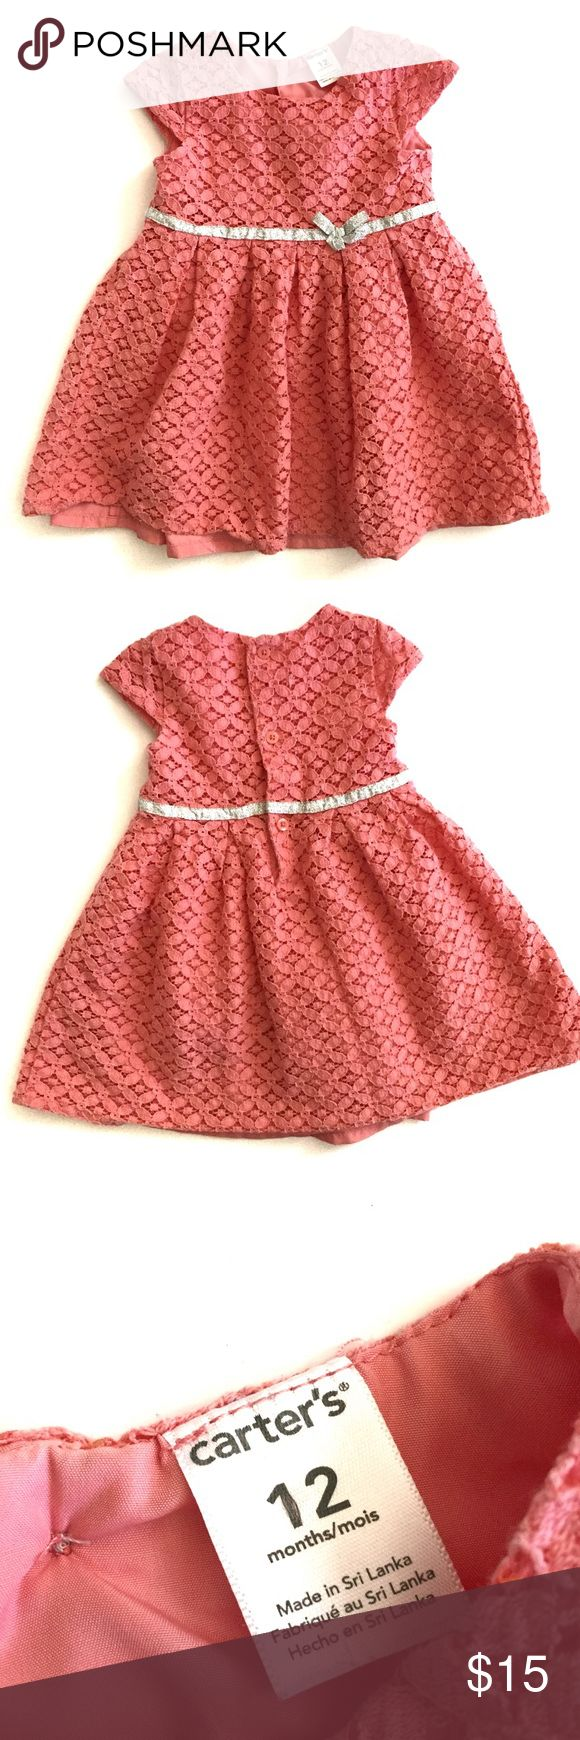 "Carter's Baby Girl's Peach Lace Dress  12 months * Perfect, gently used condition * Sleeveless * Back button placket * Taffeta lining * Sparkle belt bow  Length 16.5"" Chest (armpit to armpit) 9""  Retails $38 Carter's Dresses Casual"